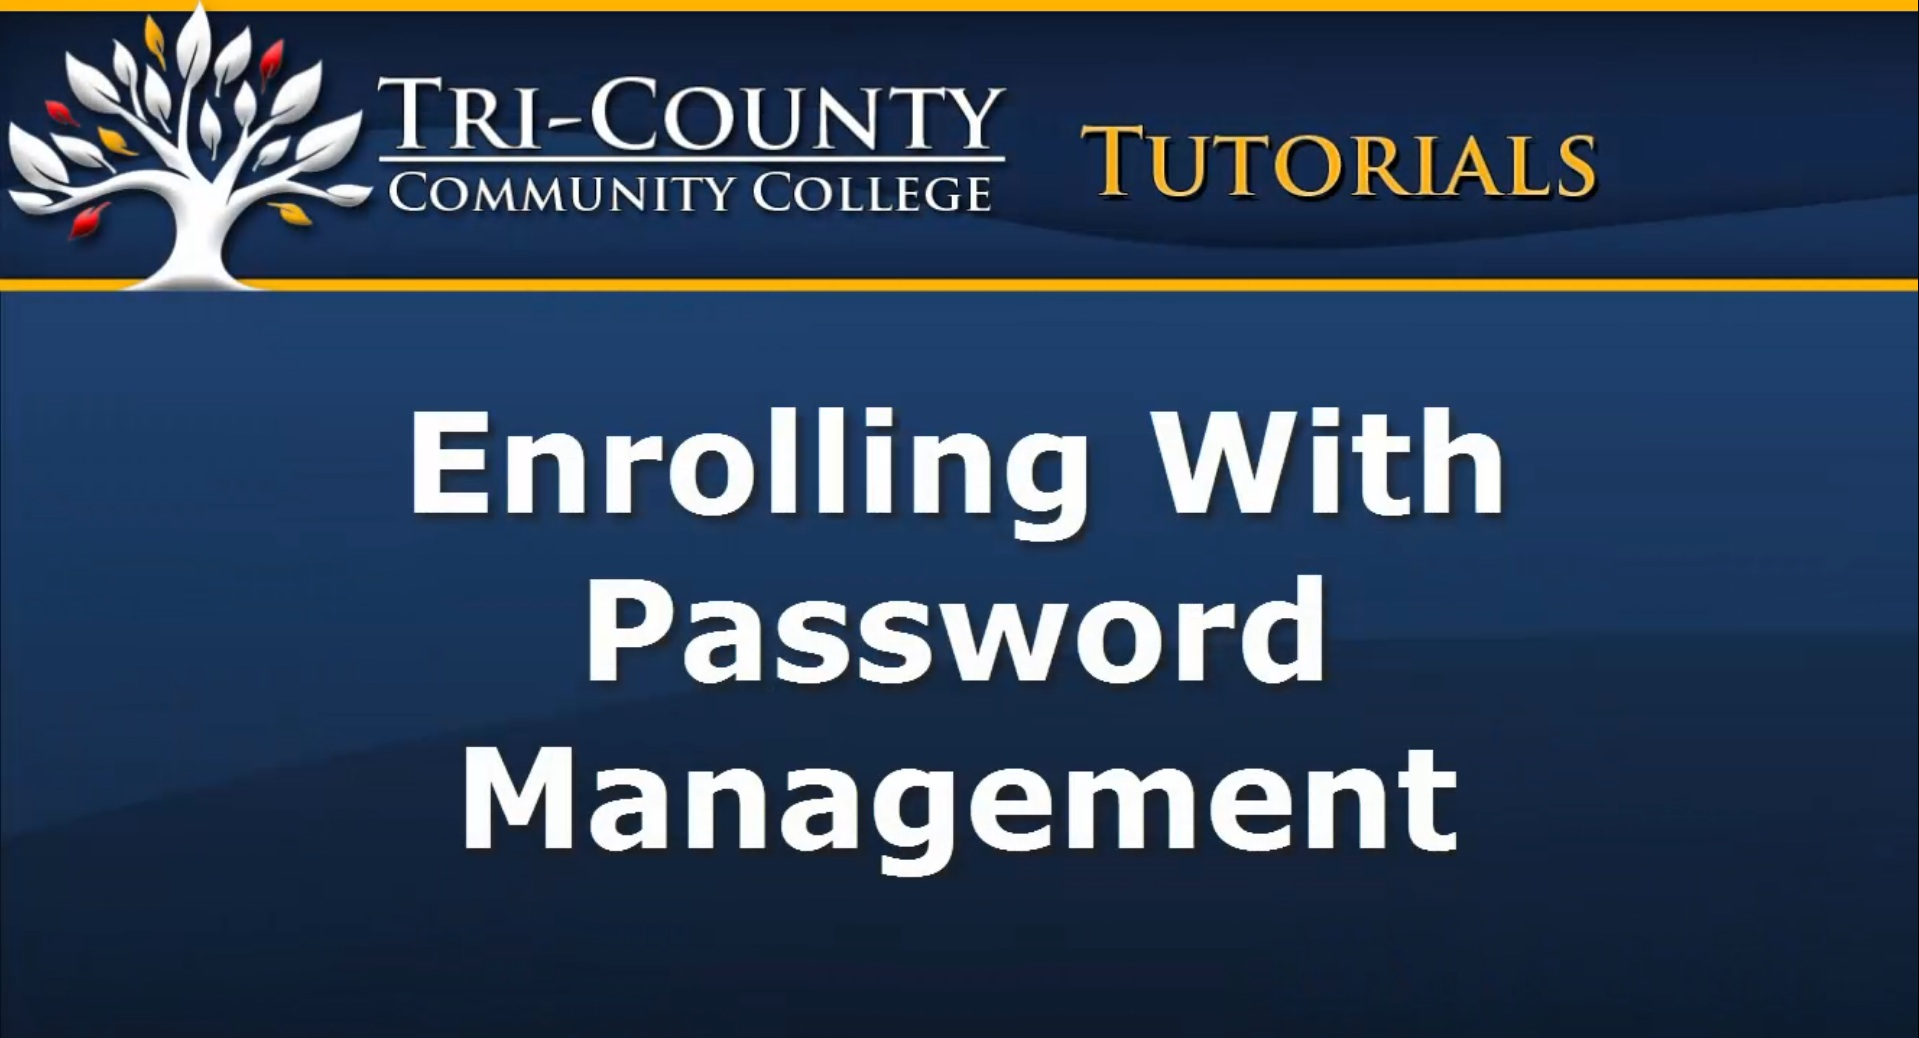 Students must enroll in Password Management at Tri-County Community College